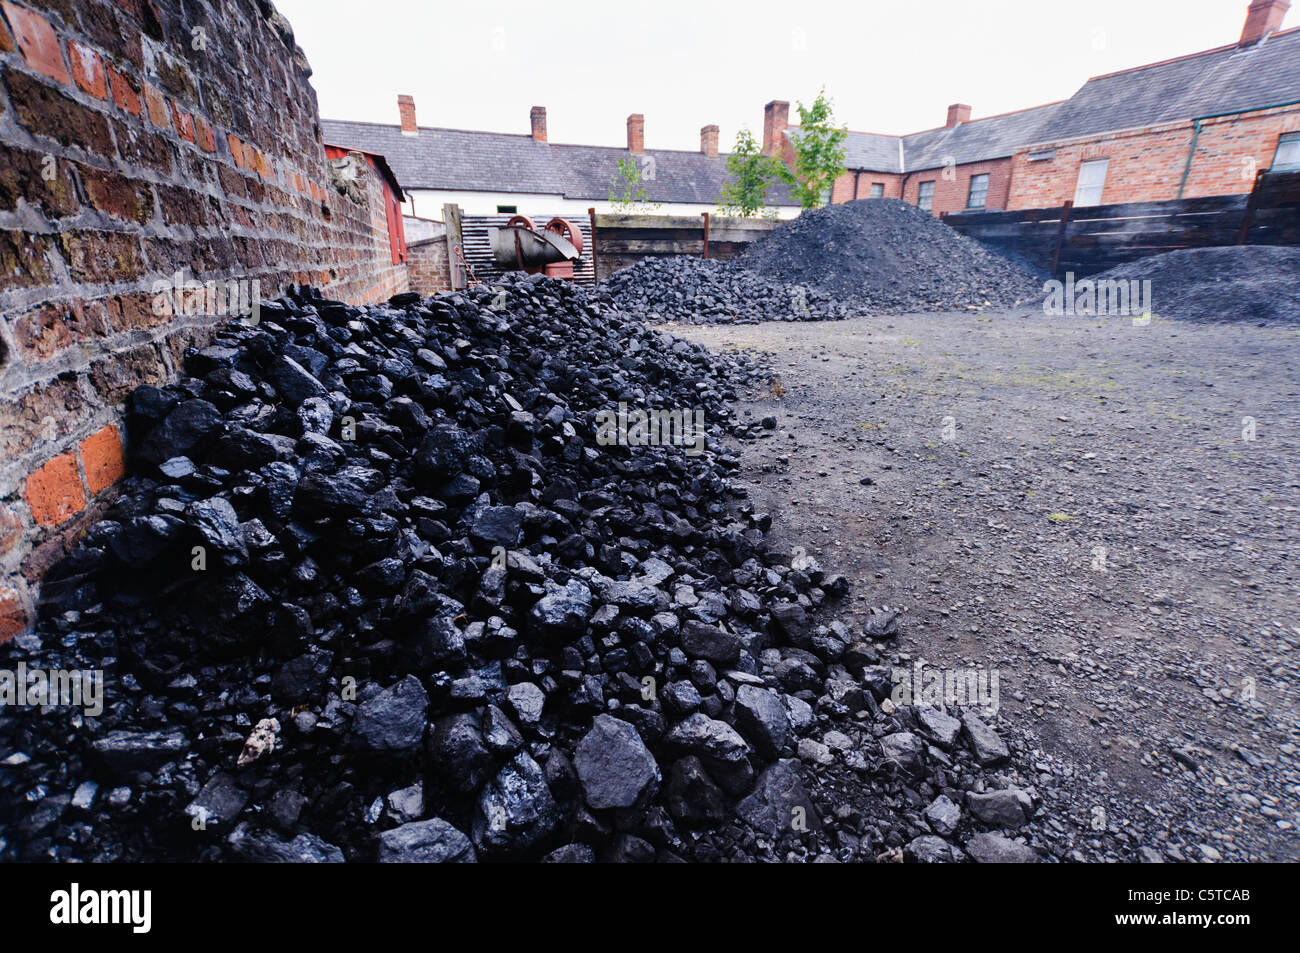 Piles of coal at a coal yard - Stock Image